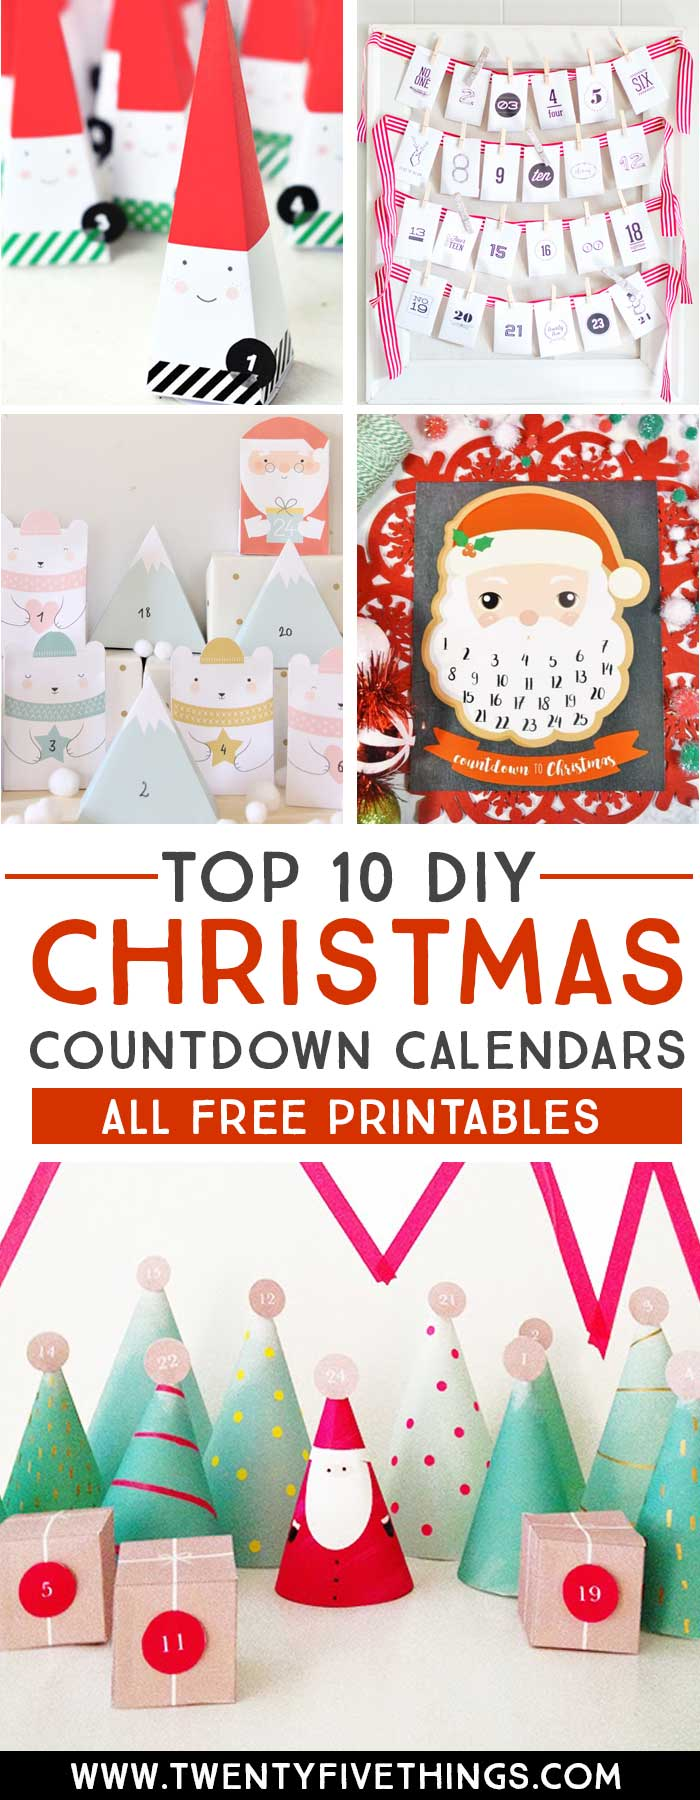 Top 10 diy printable advent calendar ideas for christmas for Diy christmas advent calendar ideas